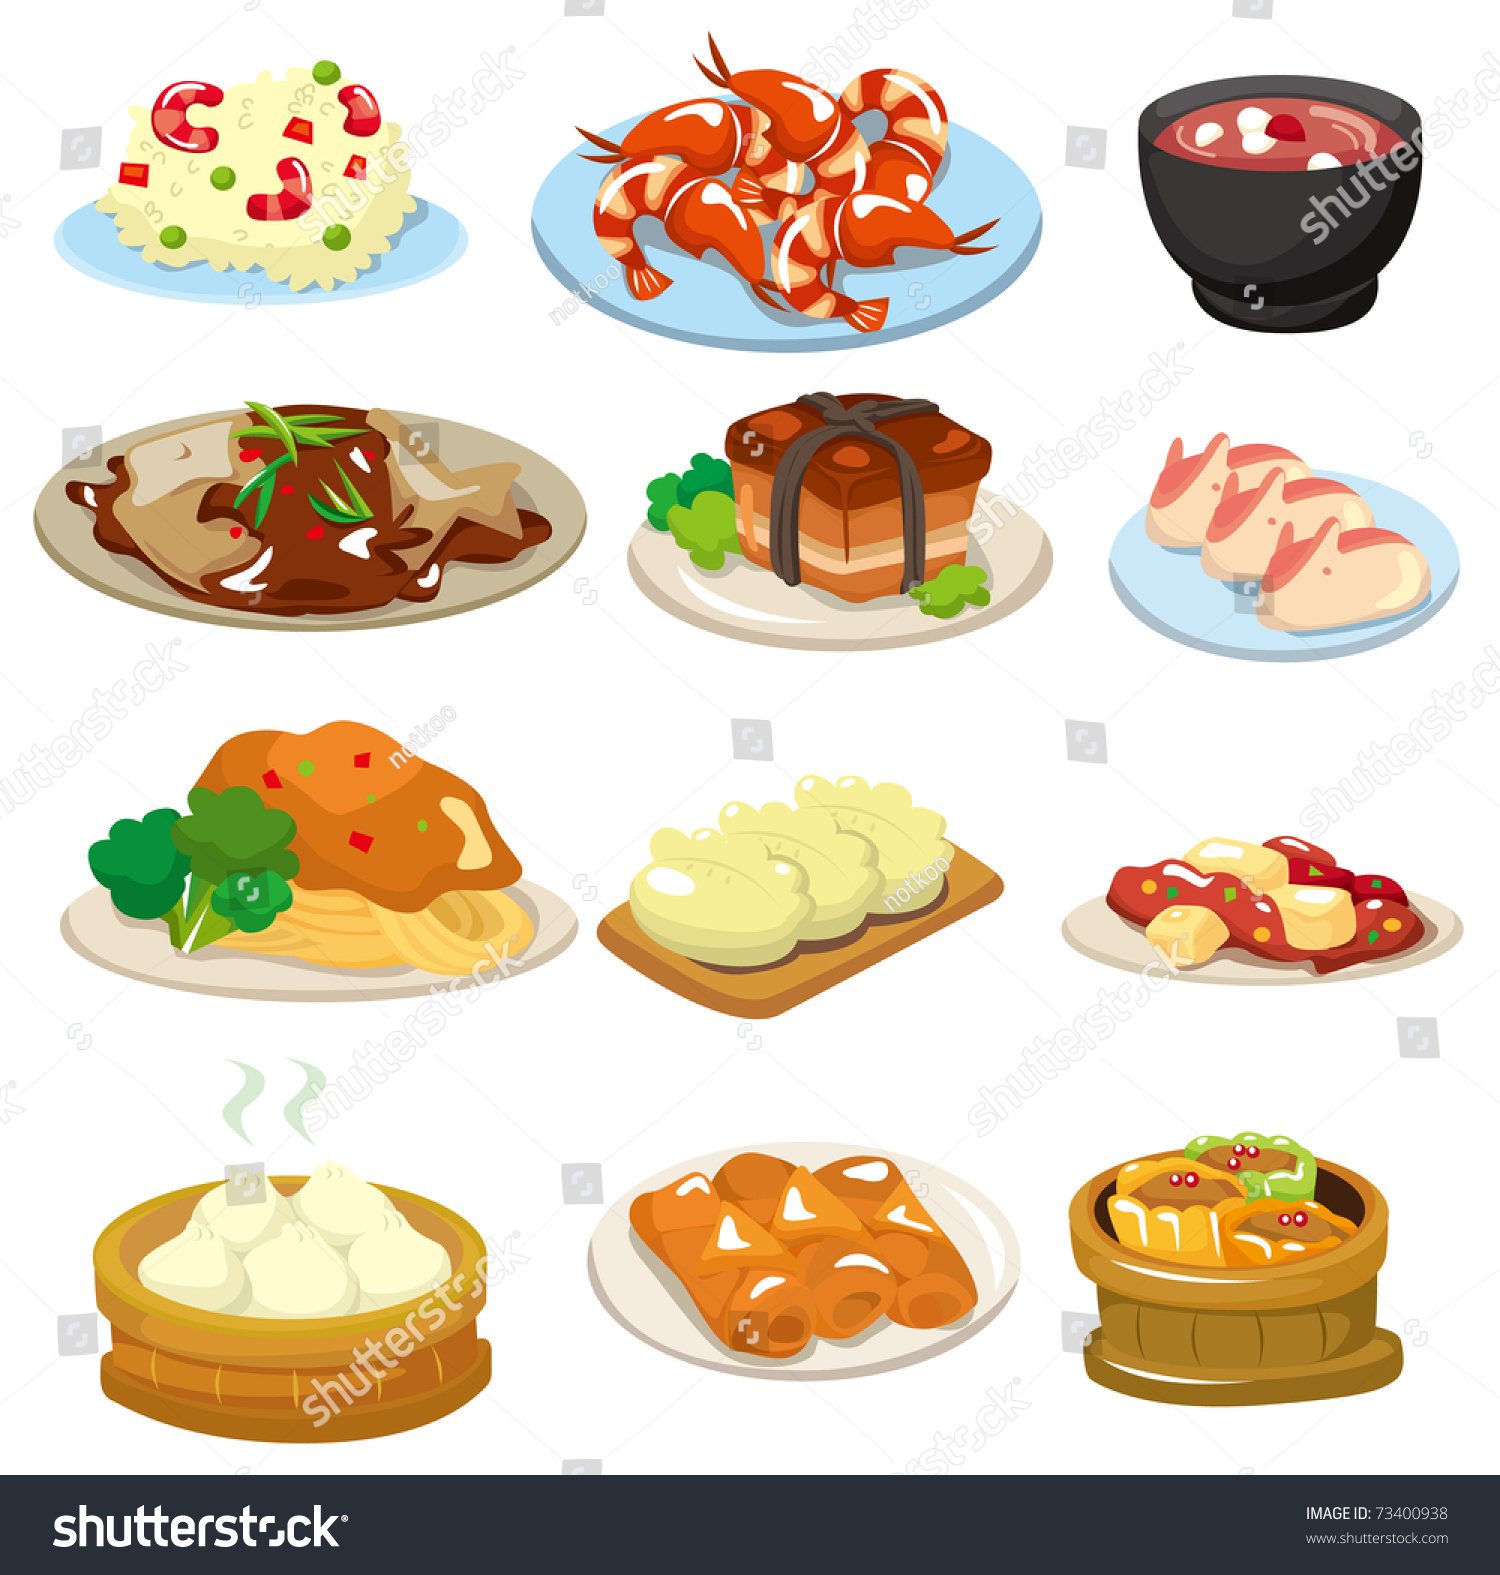 how to cook food in pixel piracy